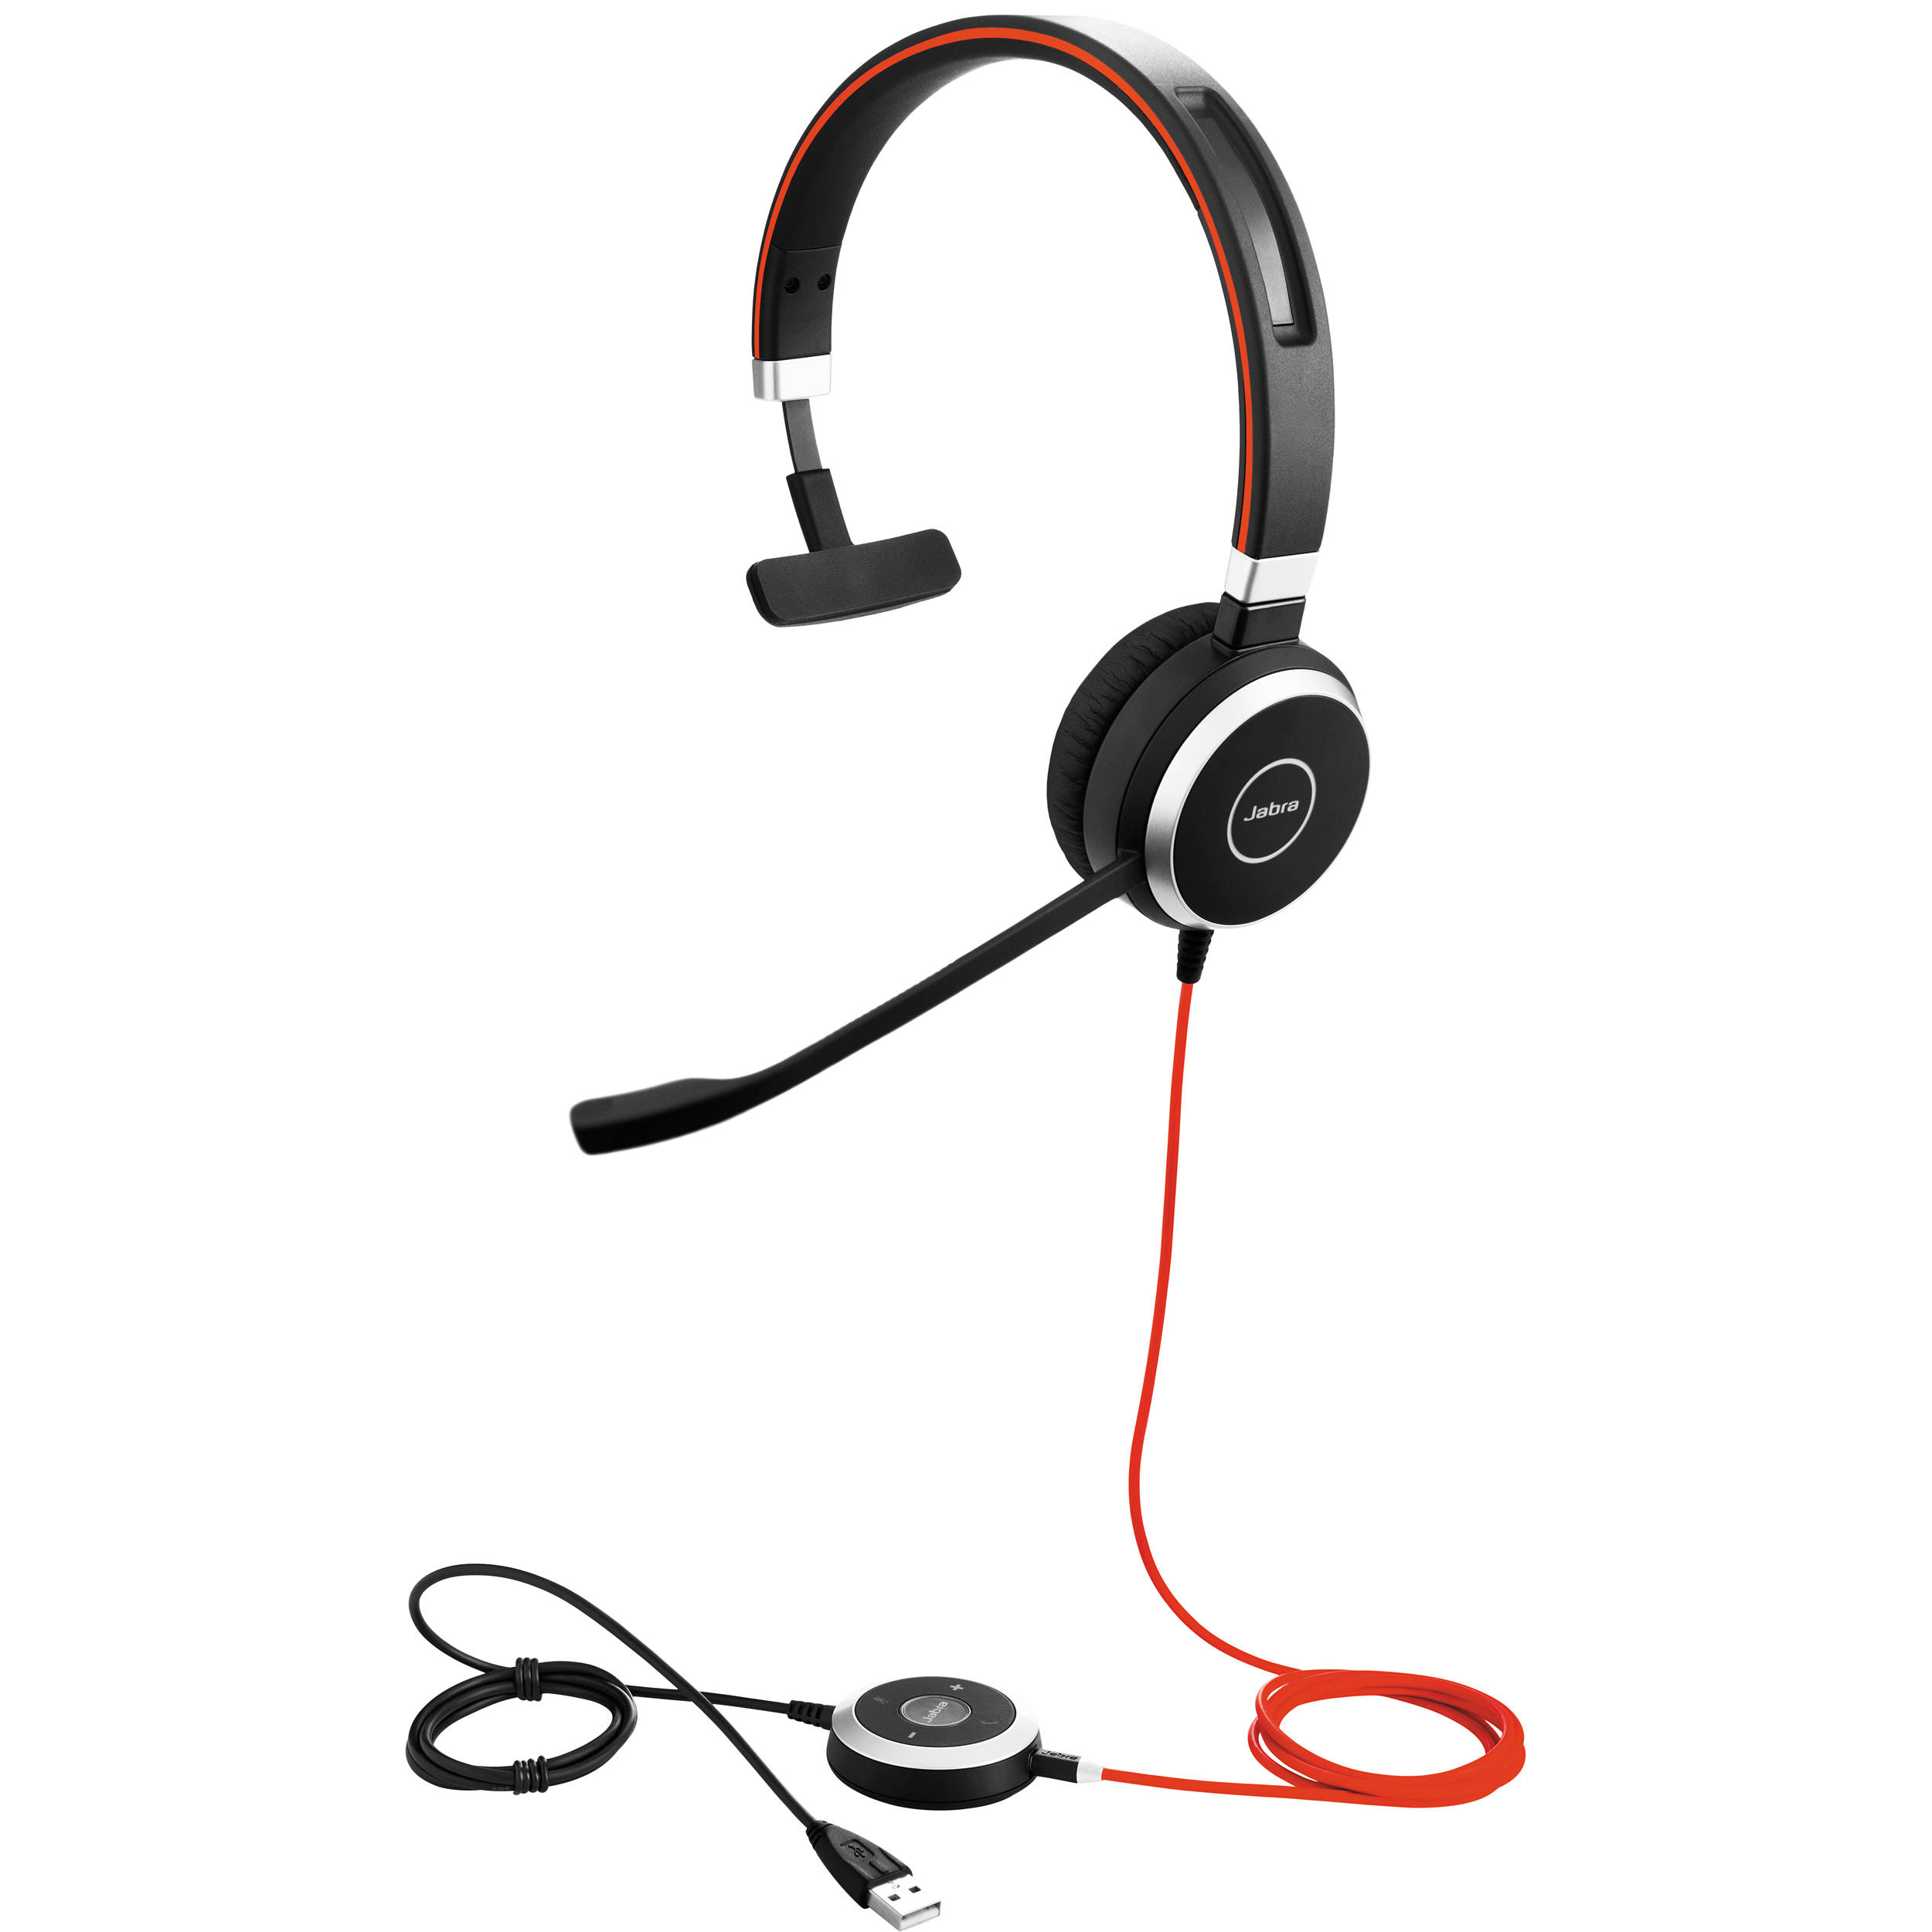 Jabra Evolve 40 mono with 3.5mm